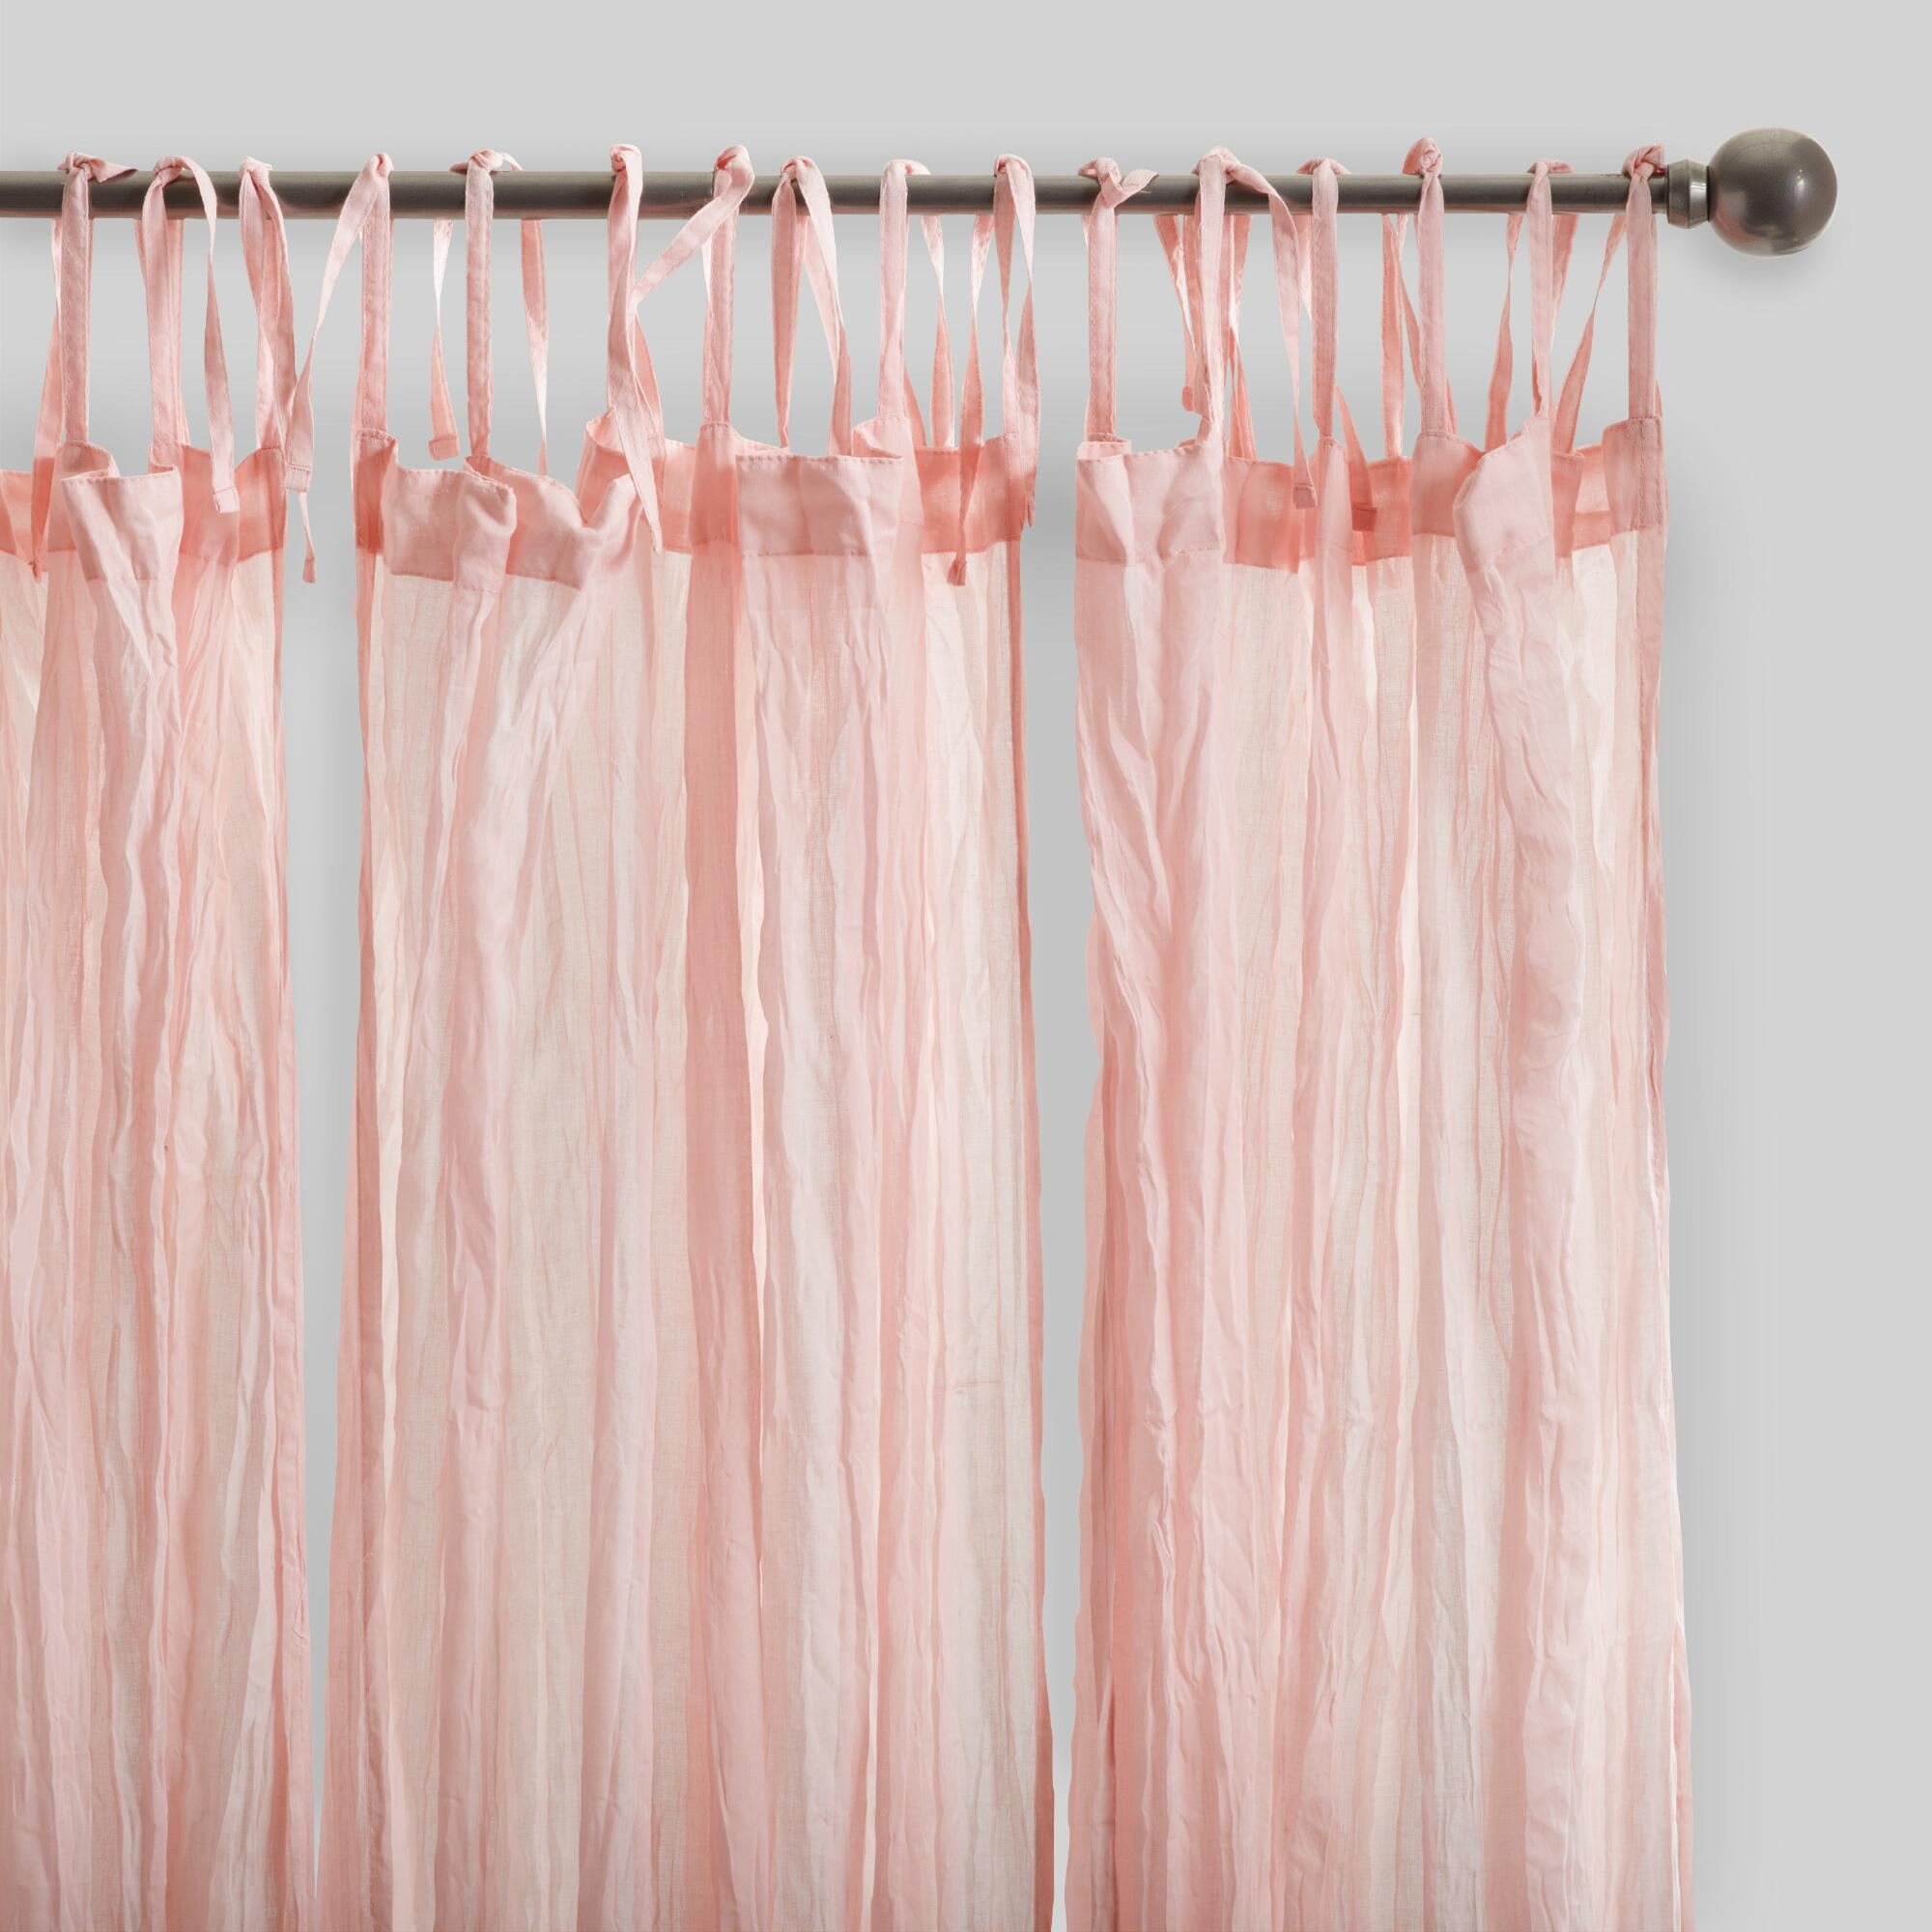 Blush Pink Crinkle Cotton Voile Curtains Set Of 2 World